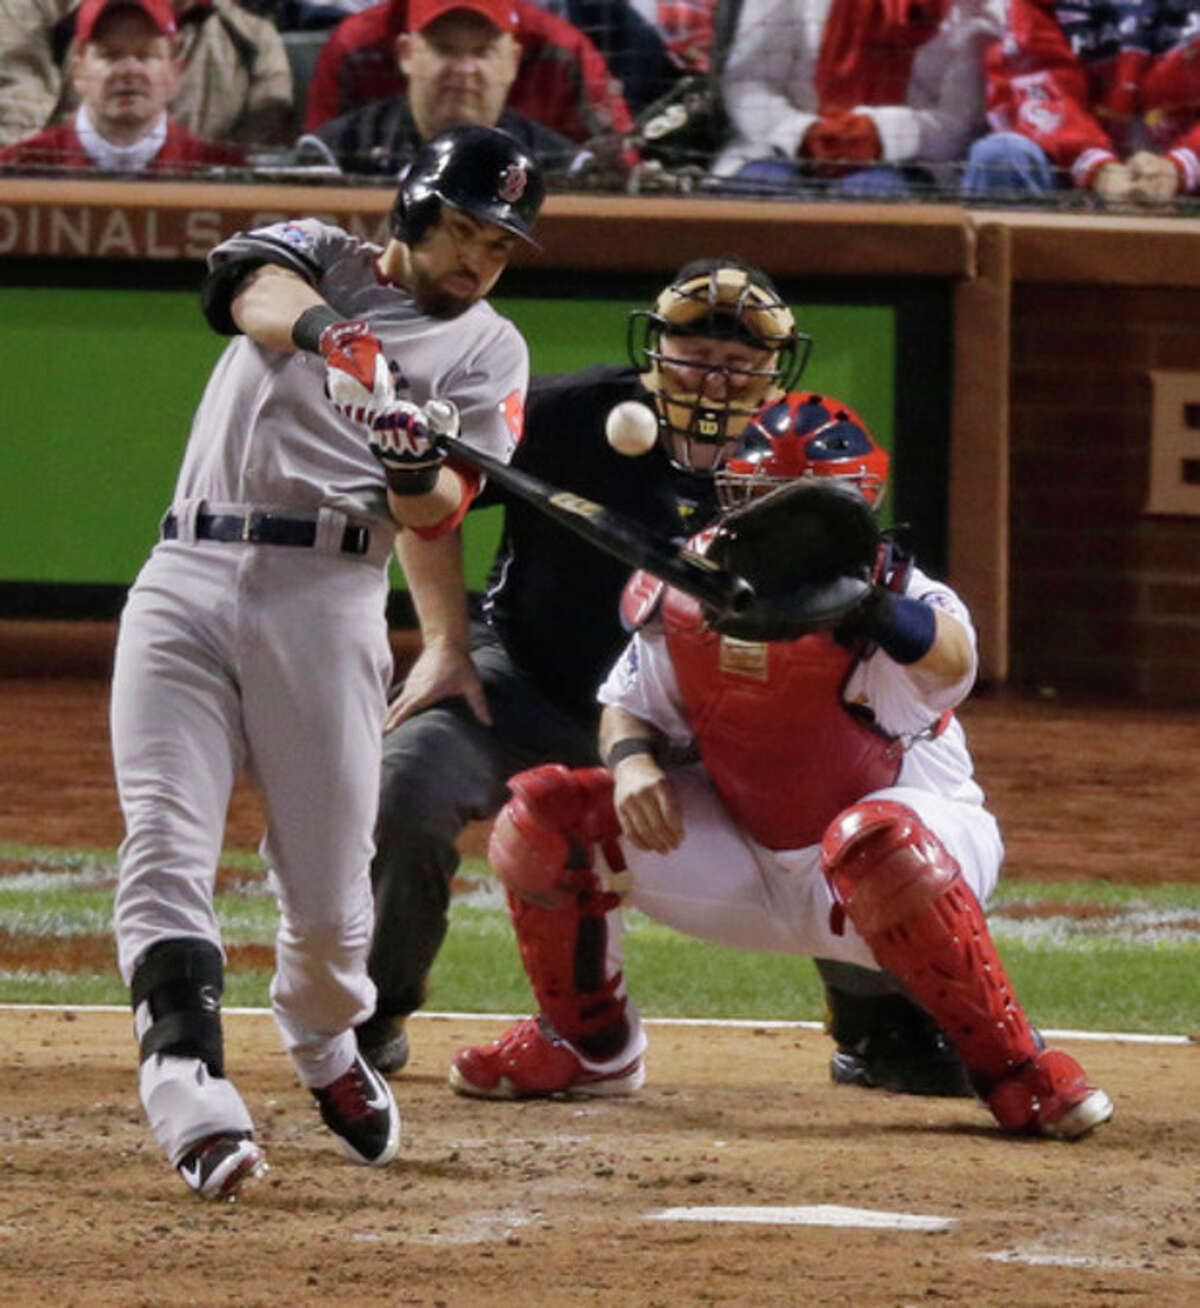 Boston Red Sox's Jacoby Ellsbury hits an RBI single during the seventh inning of Game 5 of baseball's World Series against the St. Louis Cardinals Monday, Oct. 28, 2013, in St. Louis. (AP Photo/Charlie Riedel)